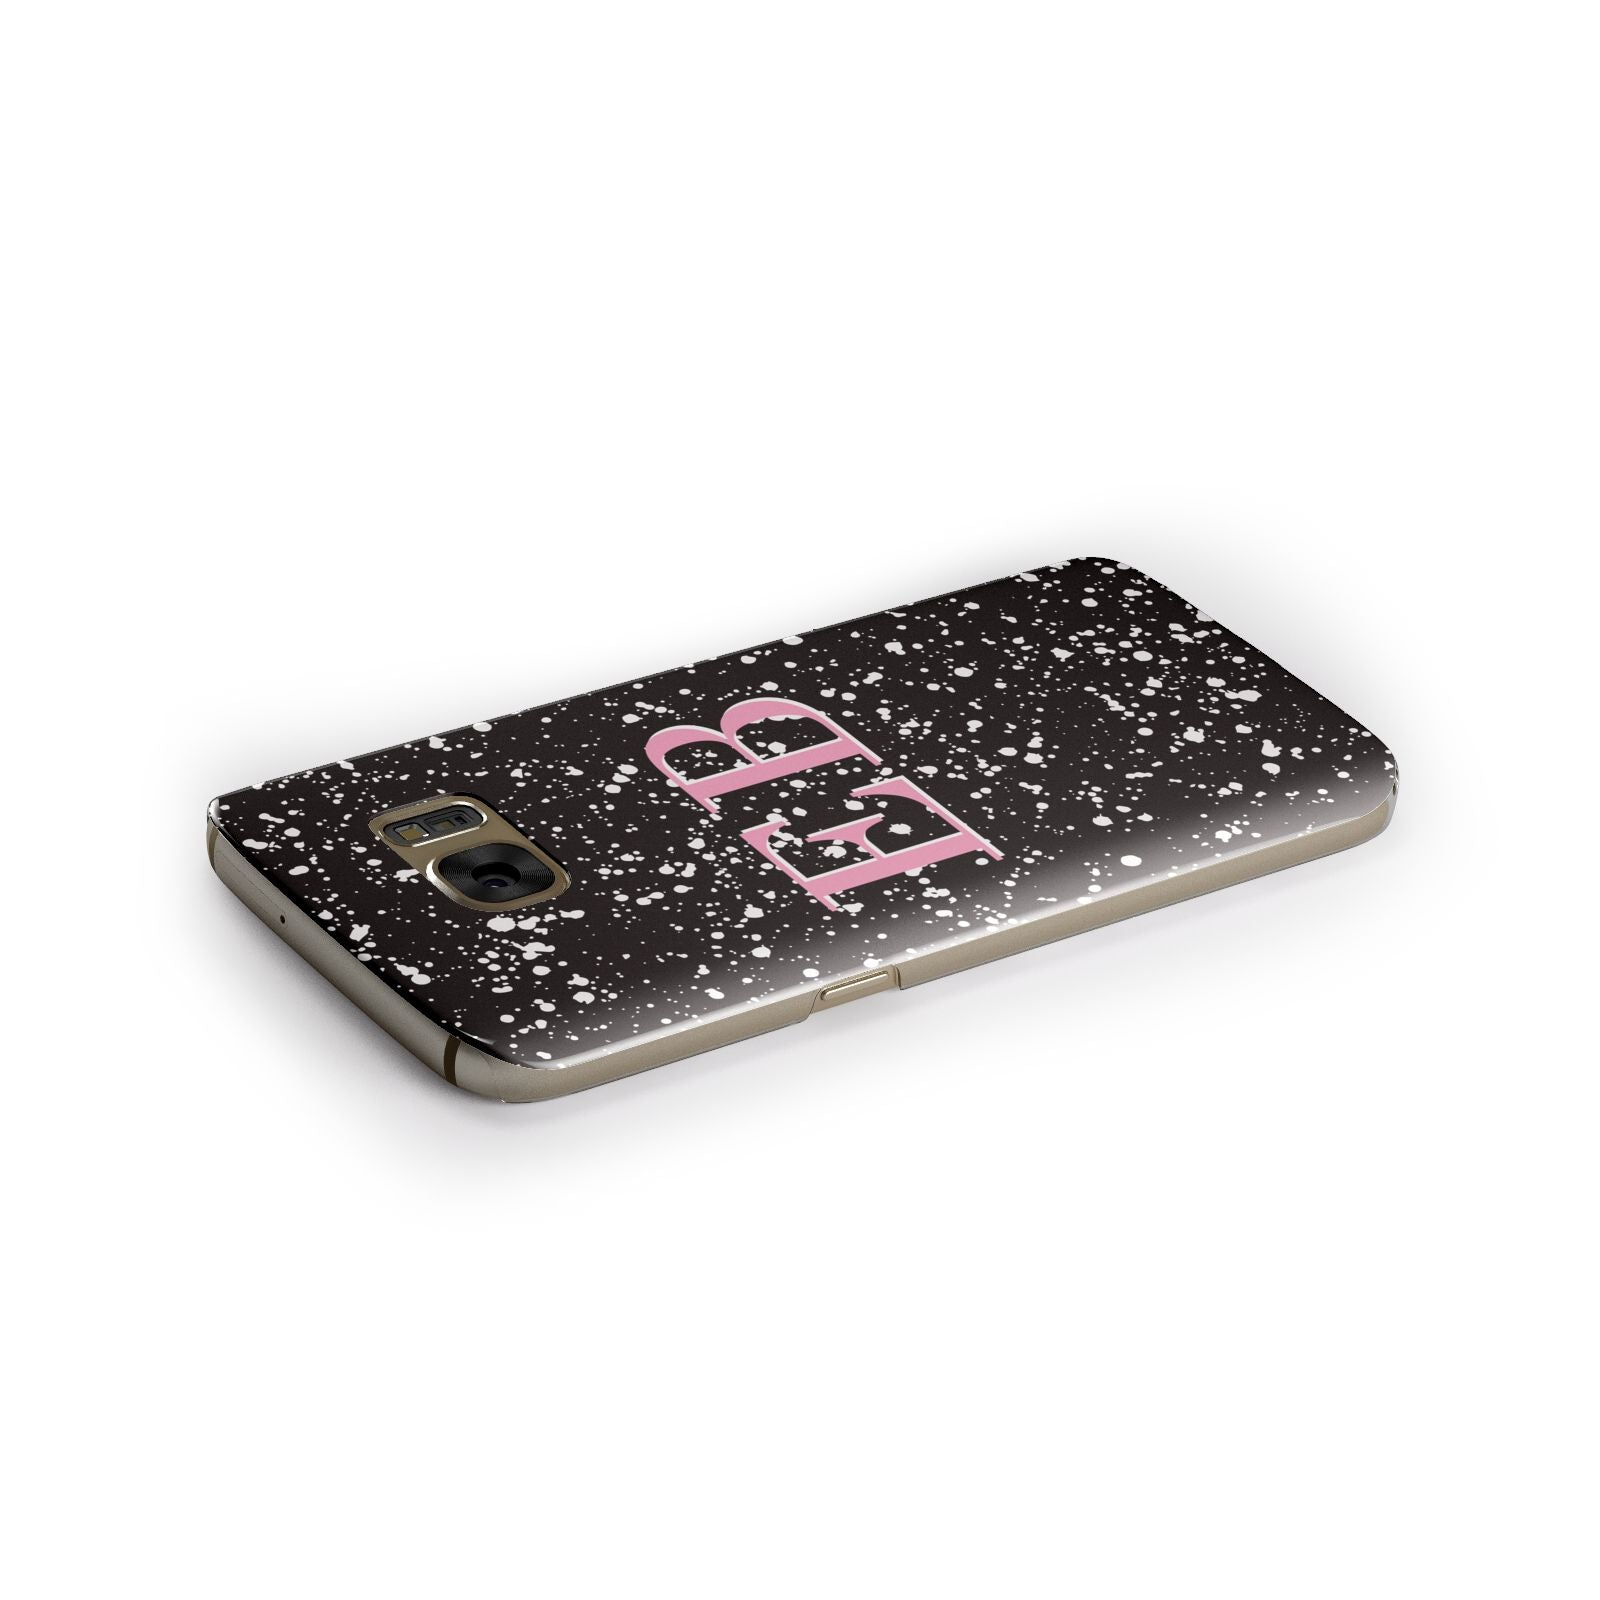 Personalised Black Ink Splat Initials Samsung Galaxy Case Side Close Up